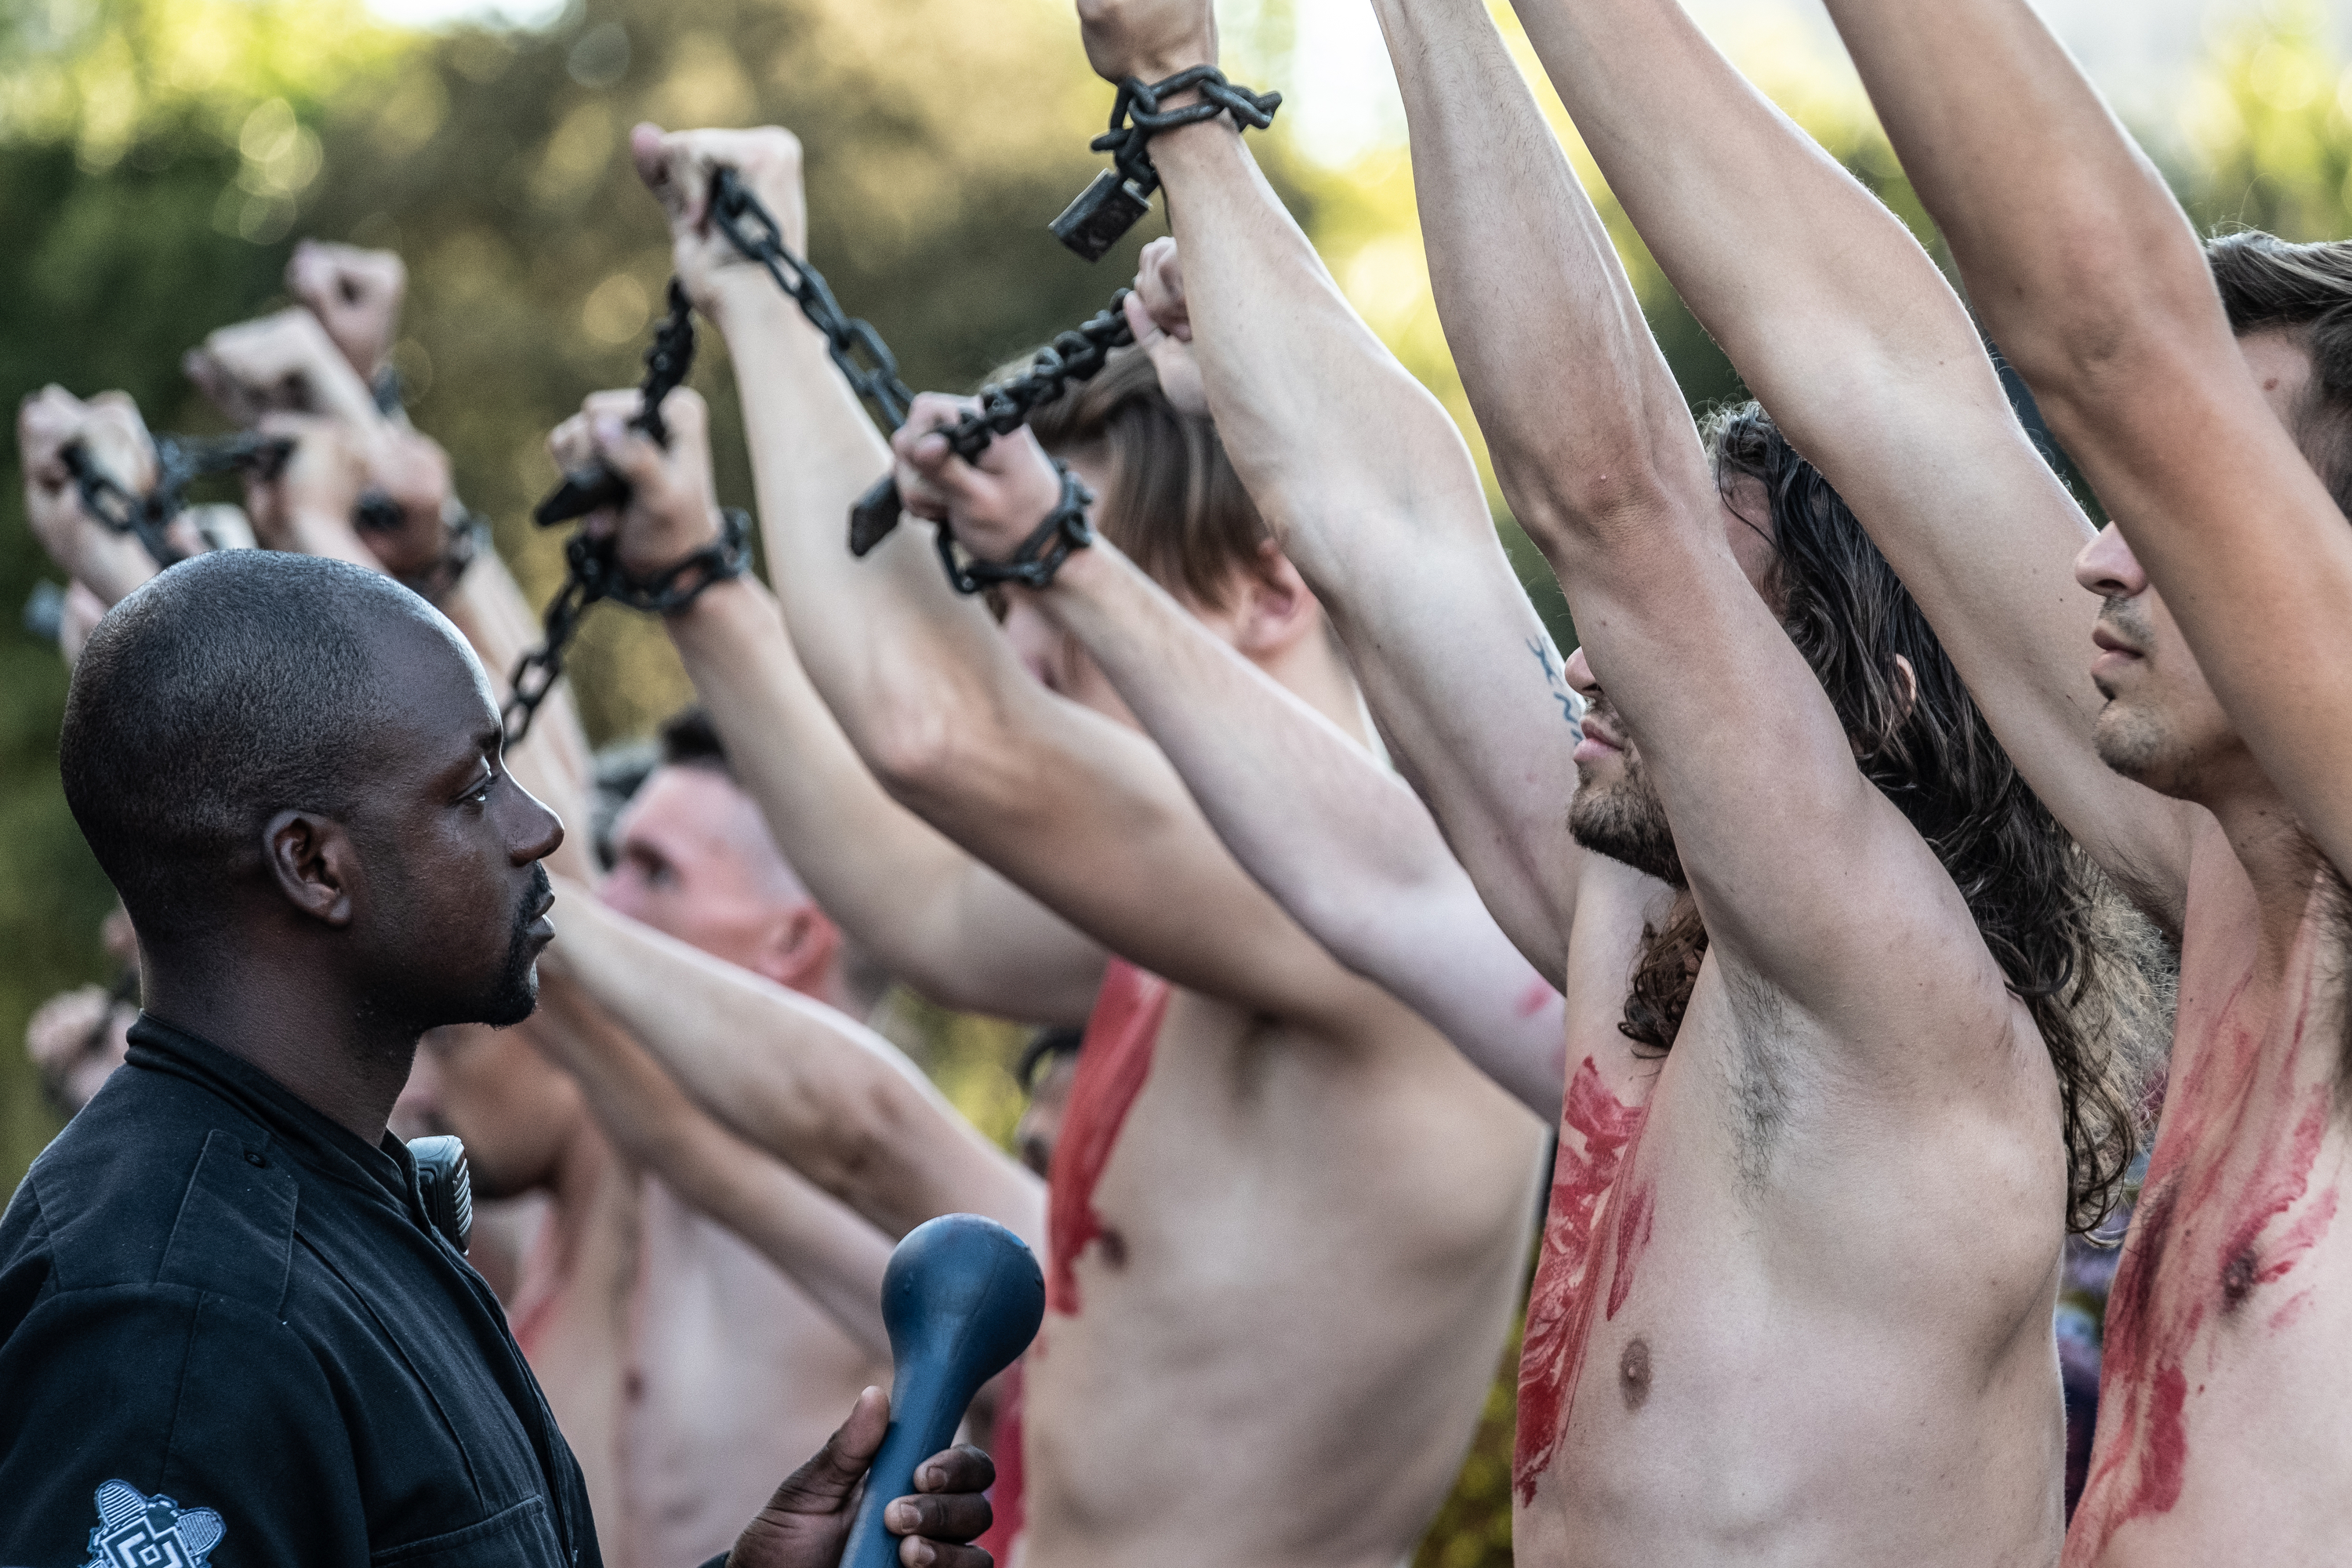 A uniformed Black agent examines a line of chained, shirtless white men in Noughts + Crosses